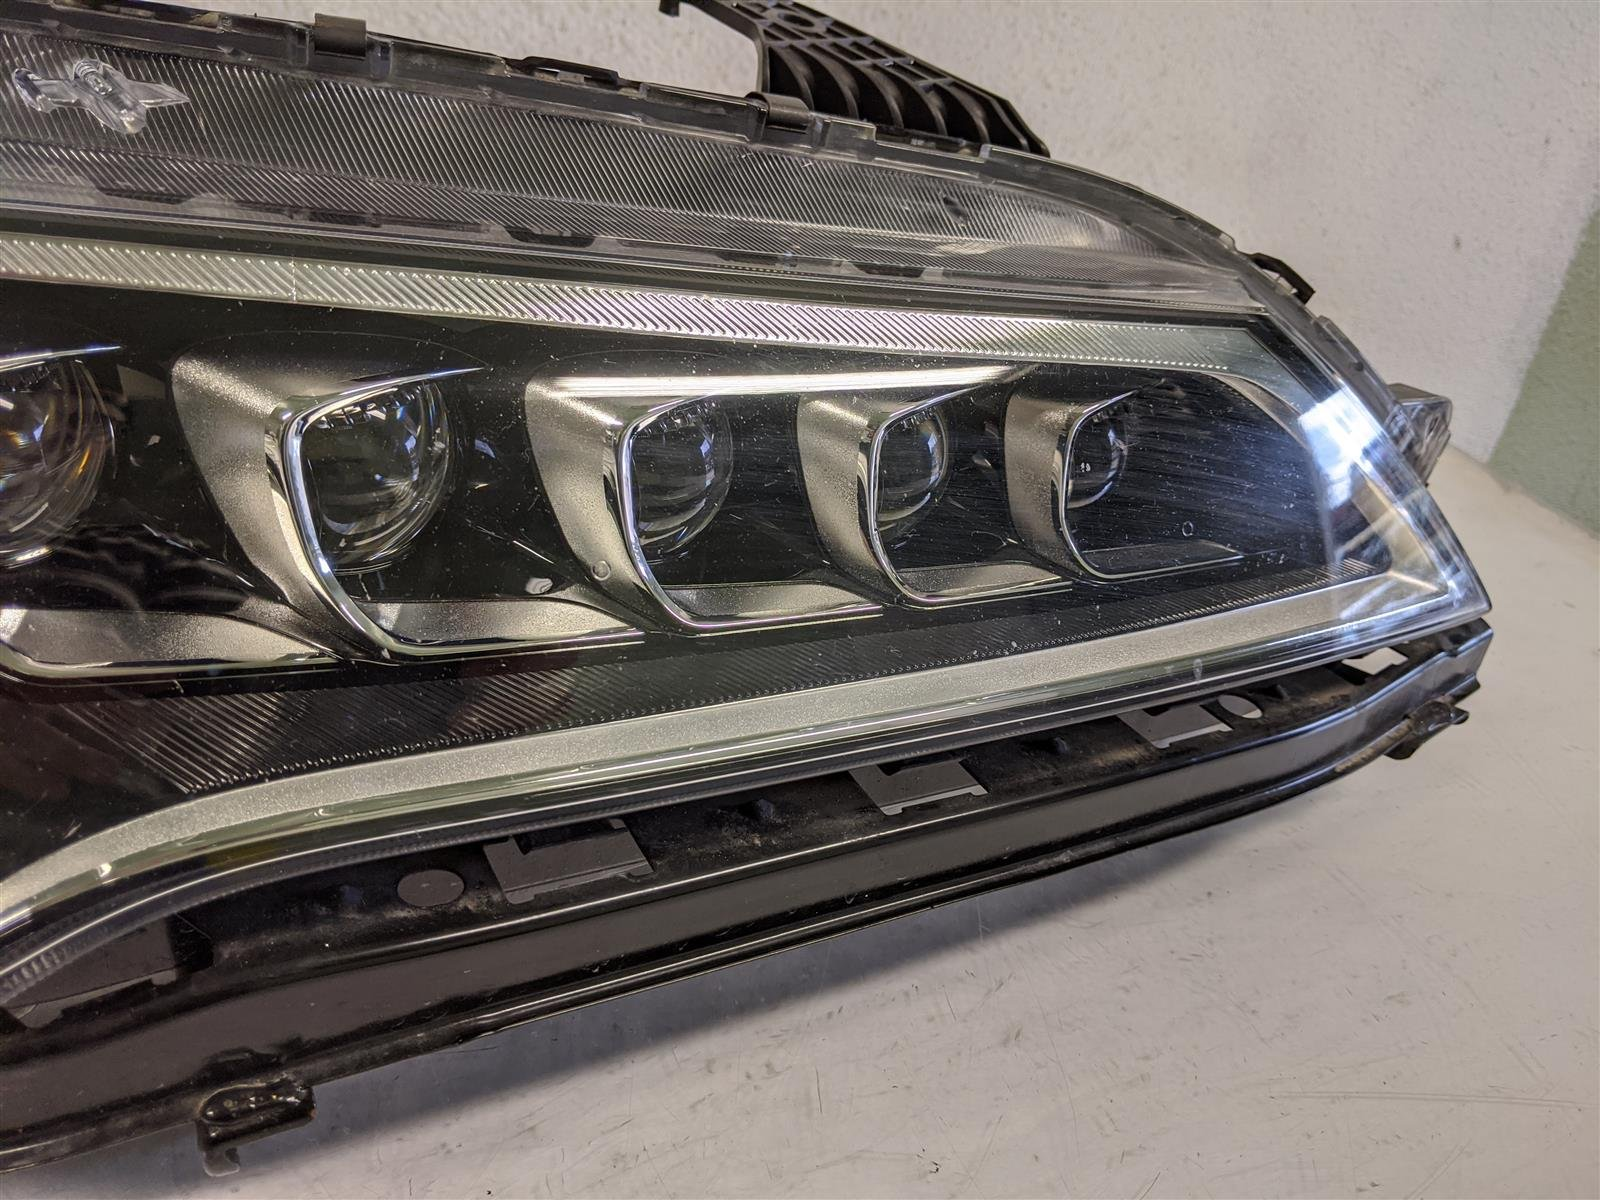 2017 Acura TLX Passenger Headlight Lamp Complete Replacement